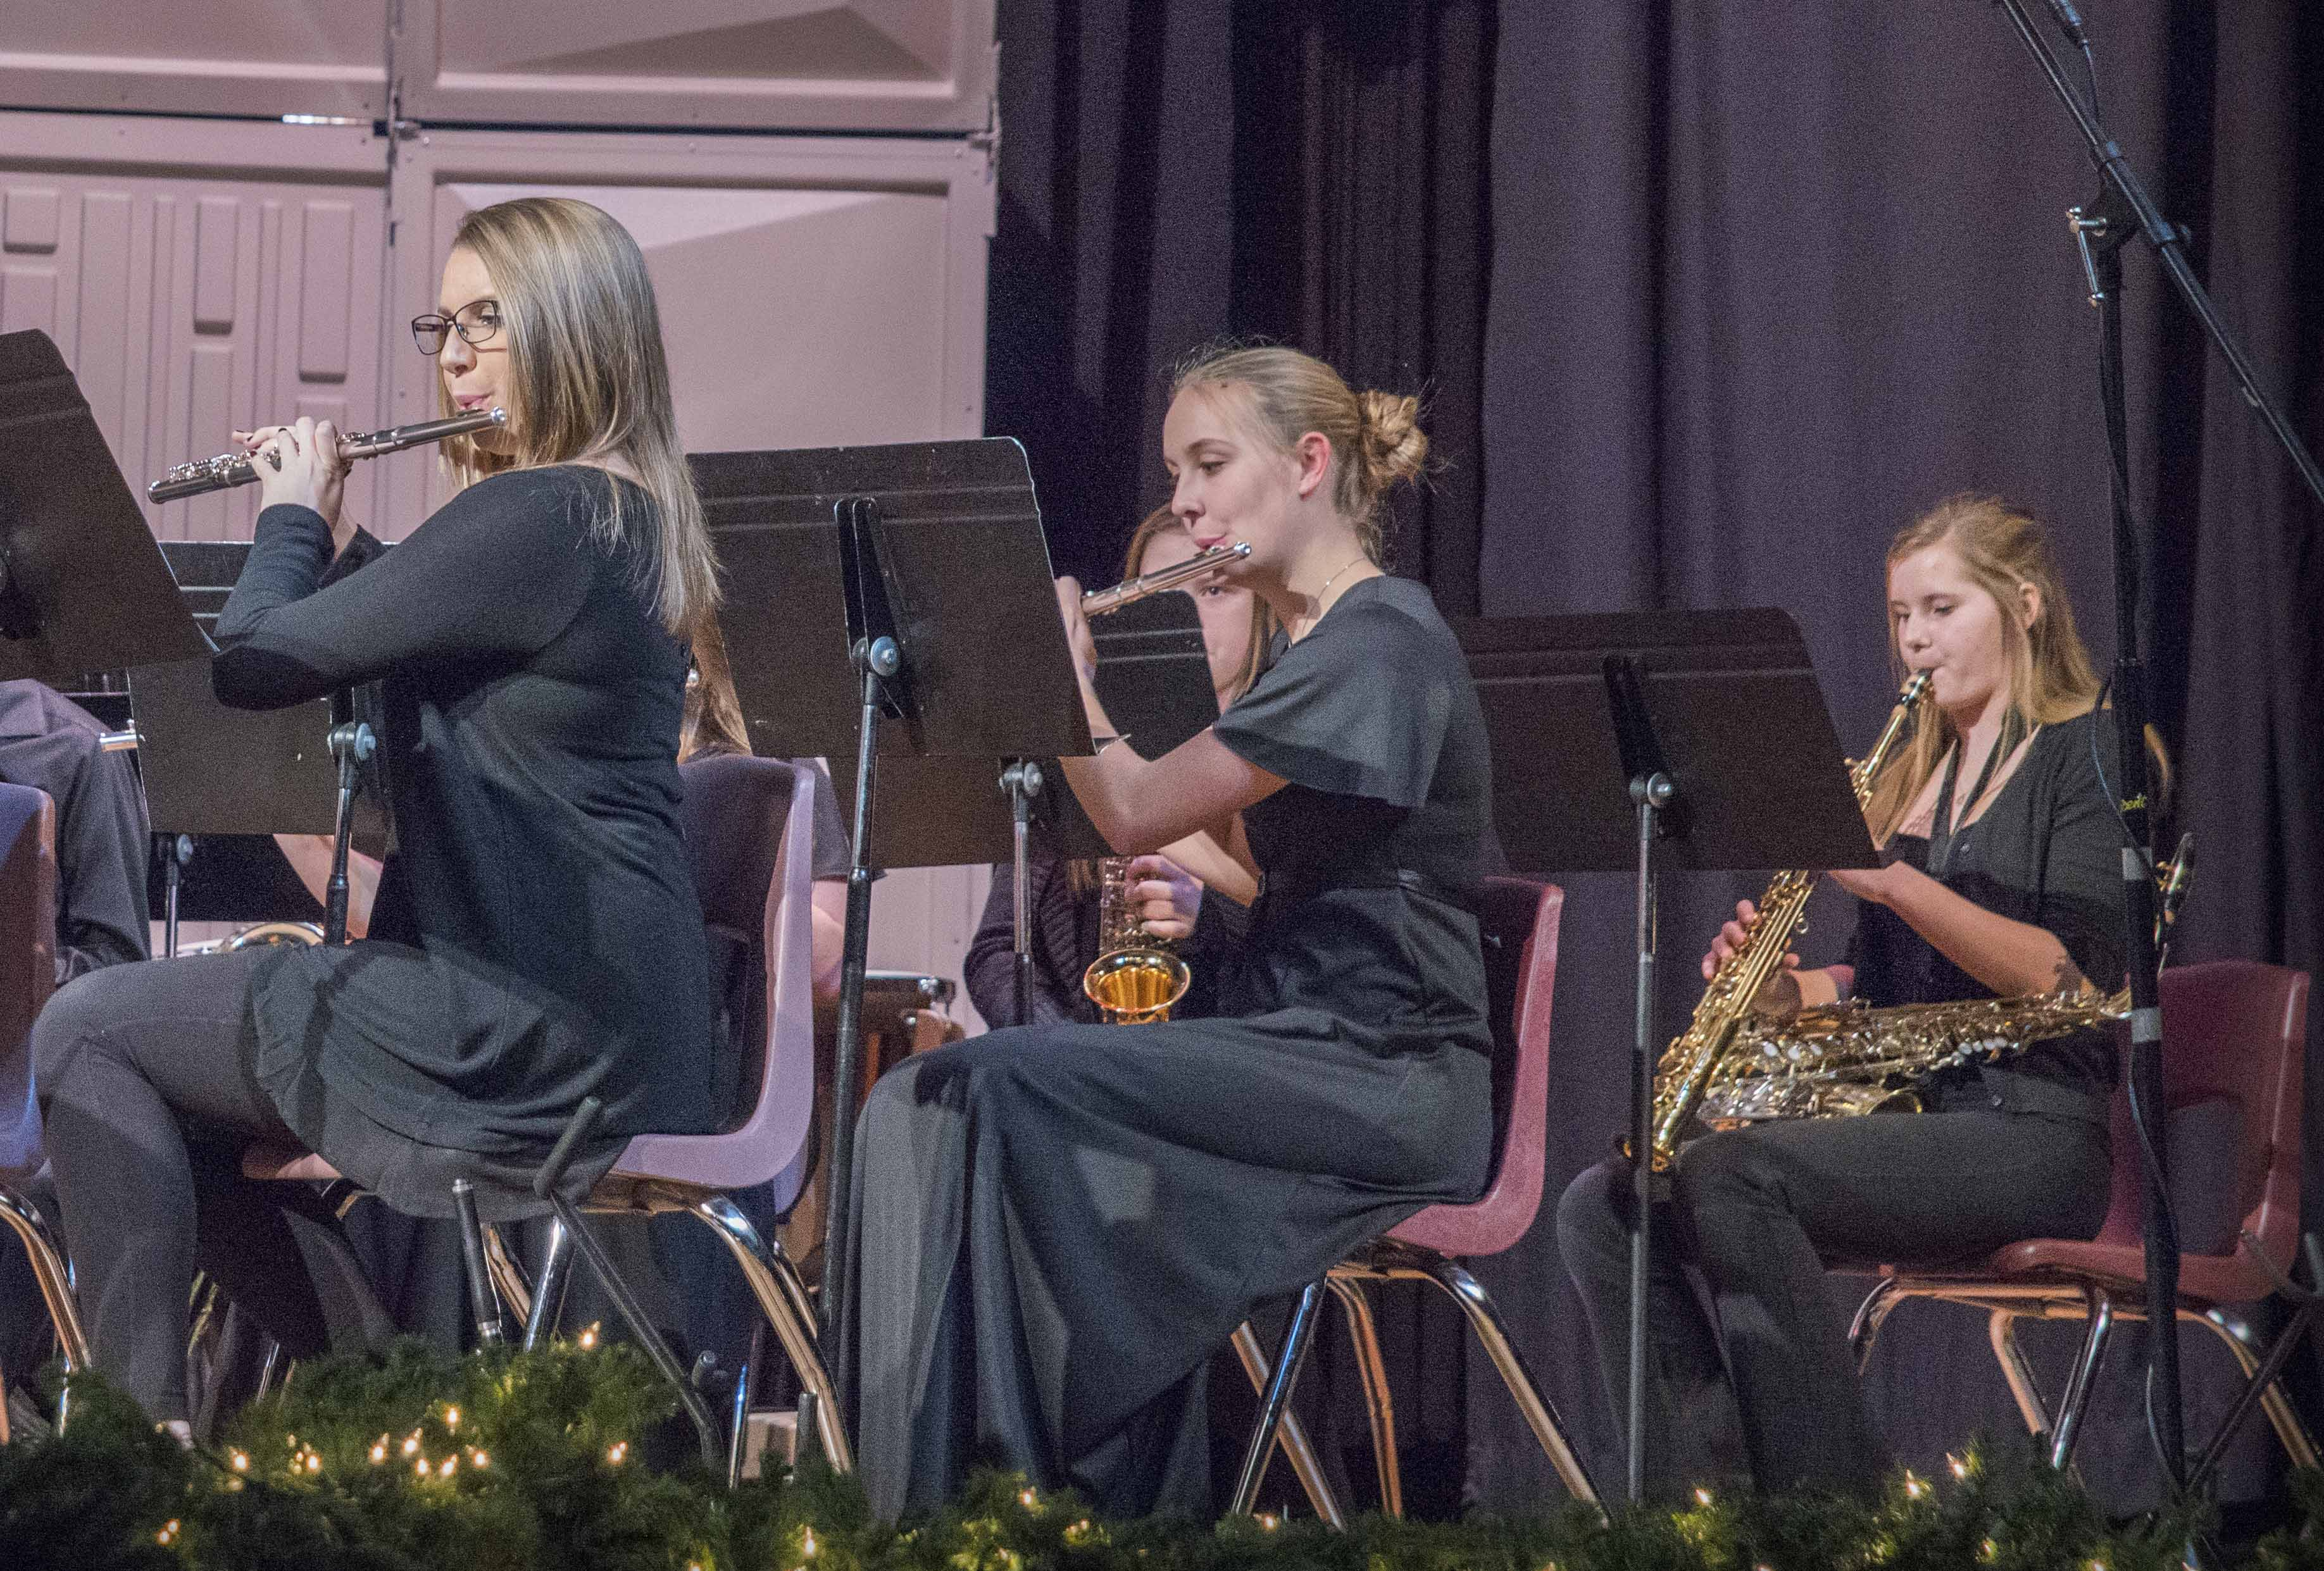 Performing during the MHS Band's Dec. 20 Holiday Concert are Abby Beem and Rachel Larabee on the flute, and Sophie Ahlrichs on alto saxophone.